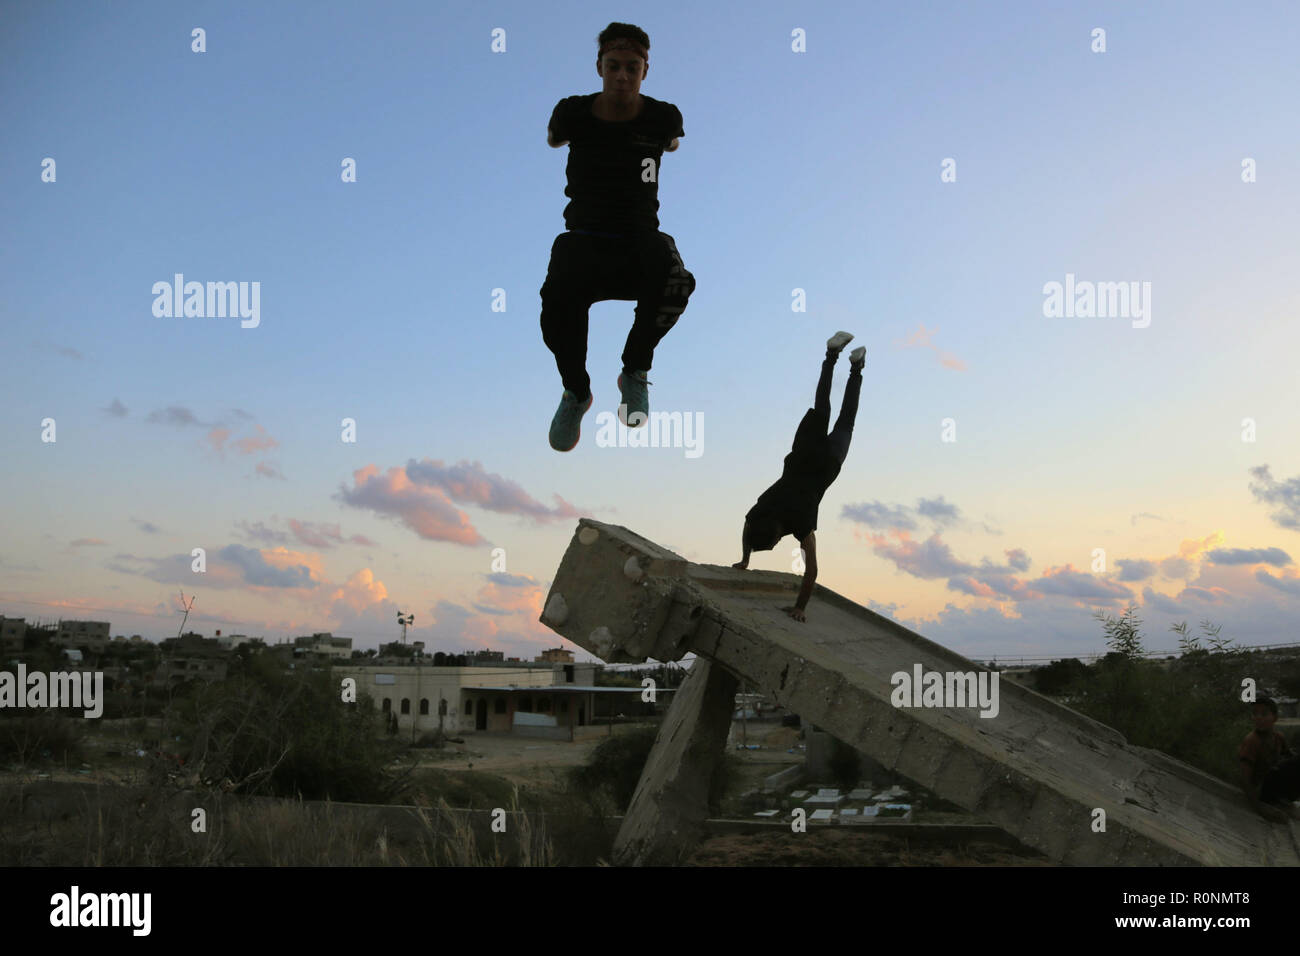 Two Palestinian youths are seen jumping high during their Parkour practice at the war-torn building in Gaza. Gaza has one of the highest youth unemployment rate in the world with over 80% of young people under the age of 30 being unemployed, Parkour is one of the ways for the youth to spend their long afternoons and keep themselves fit. - Stock Image